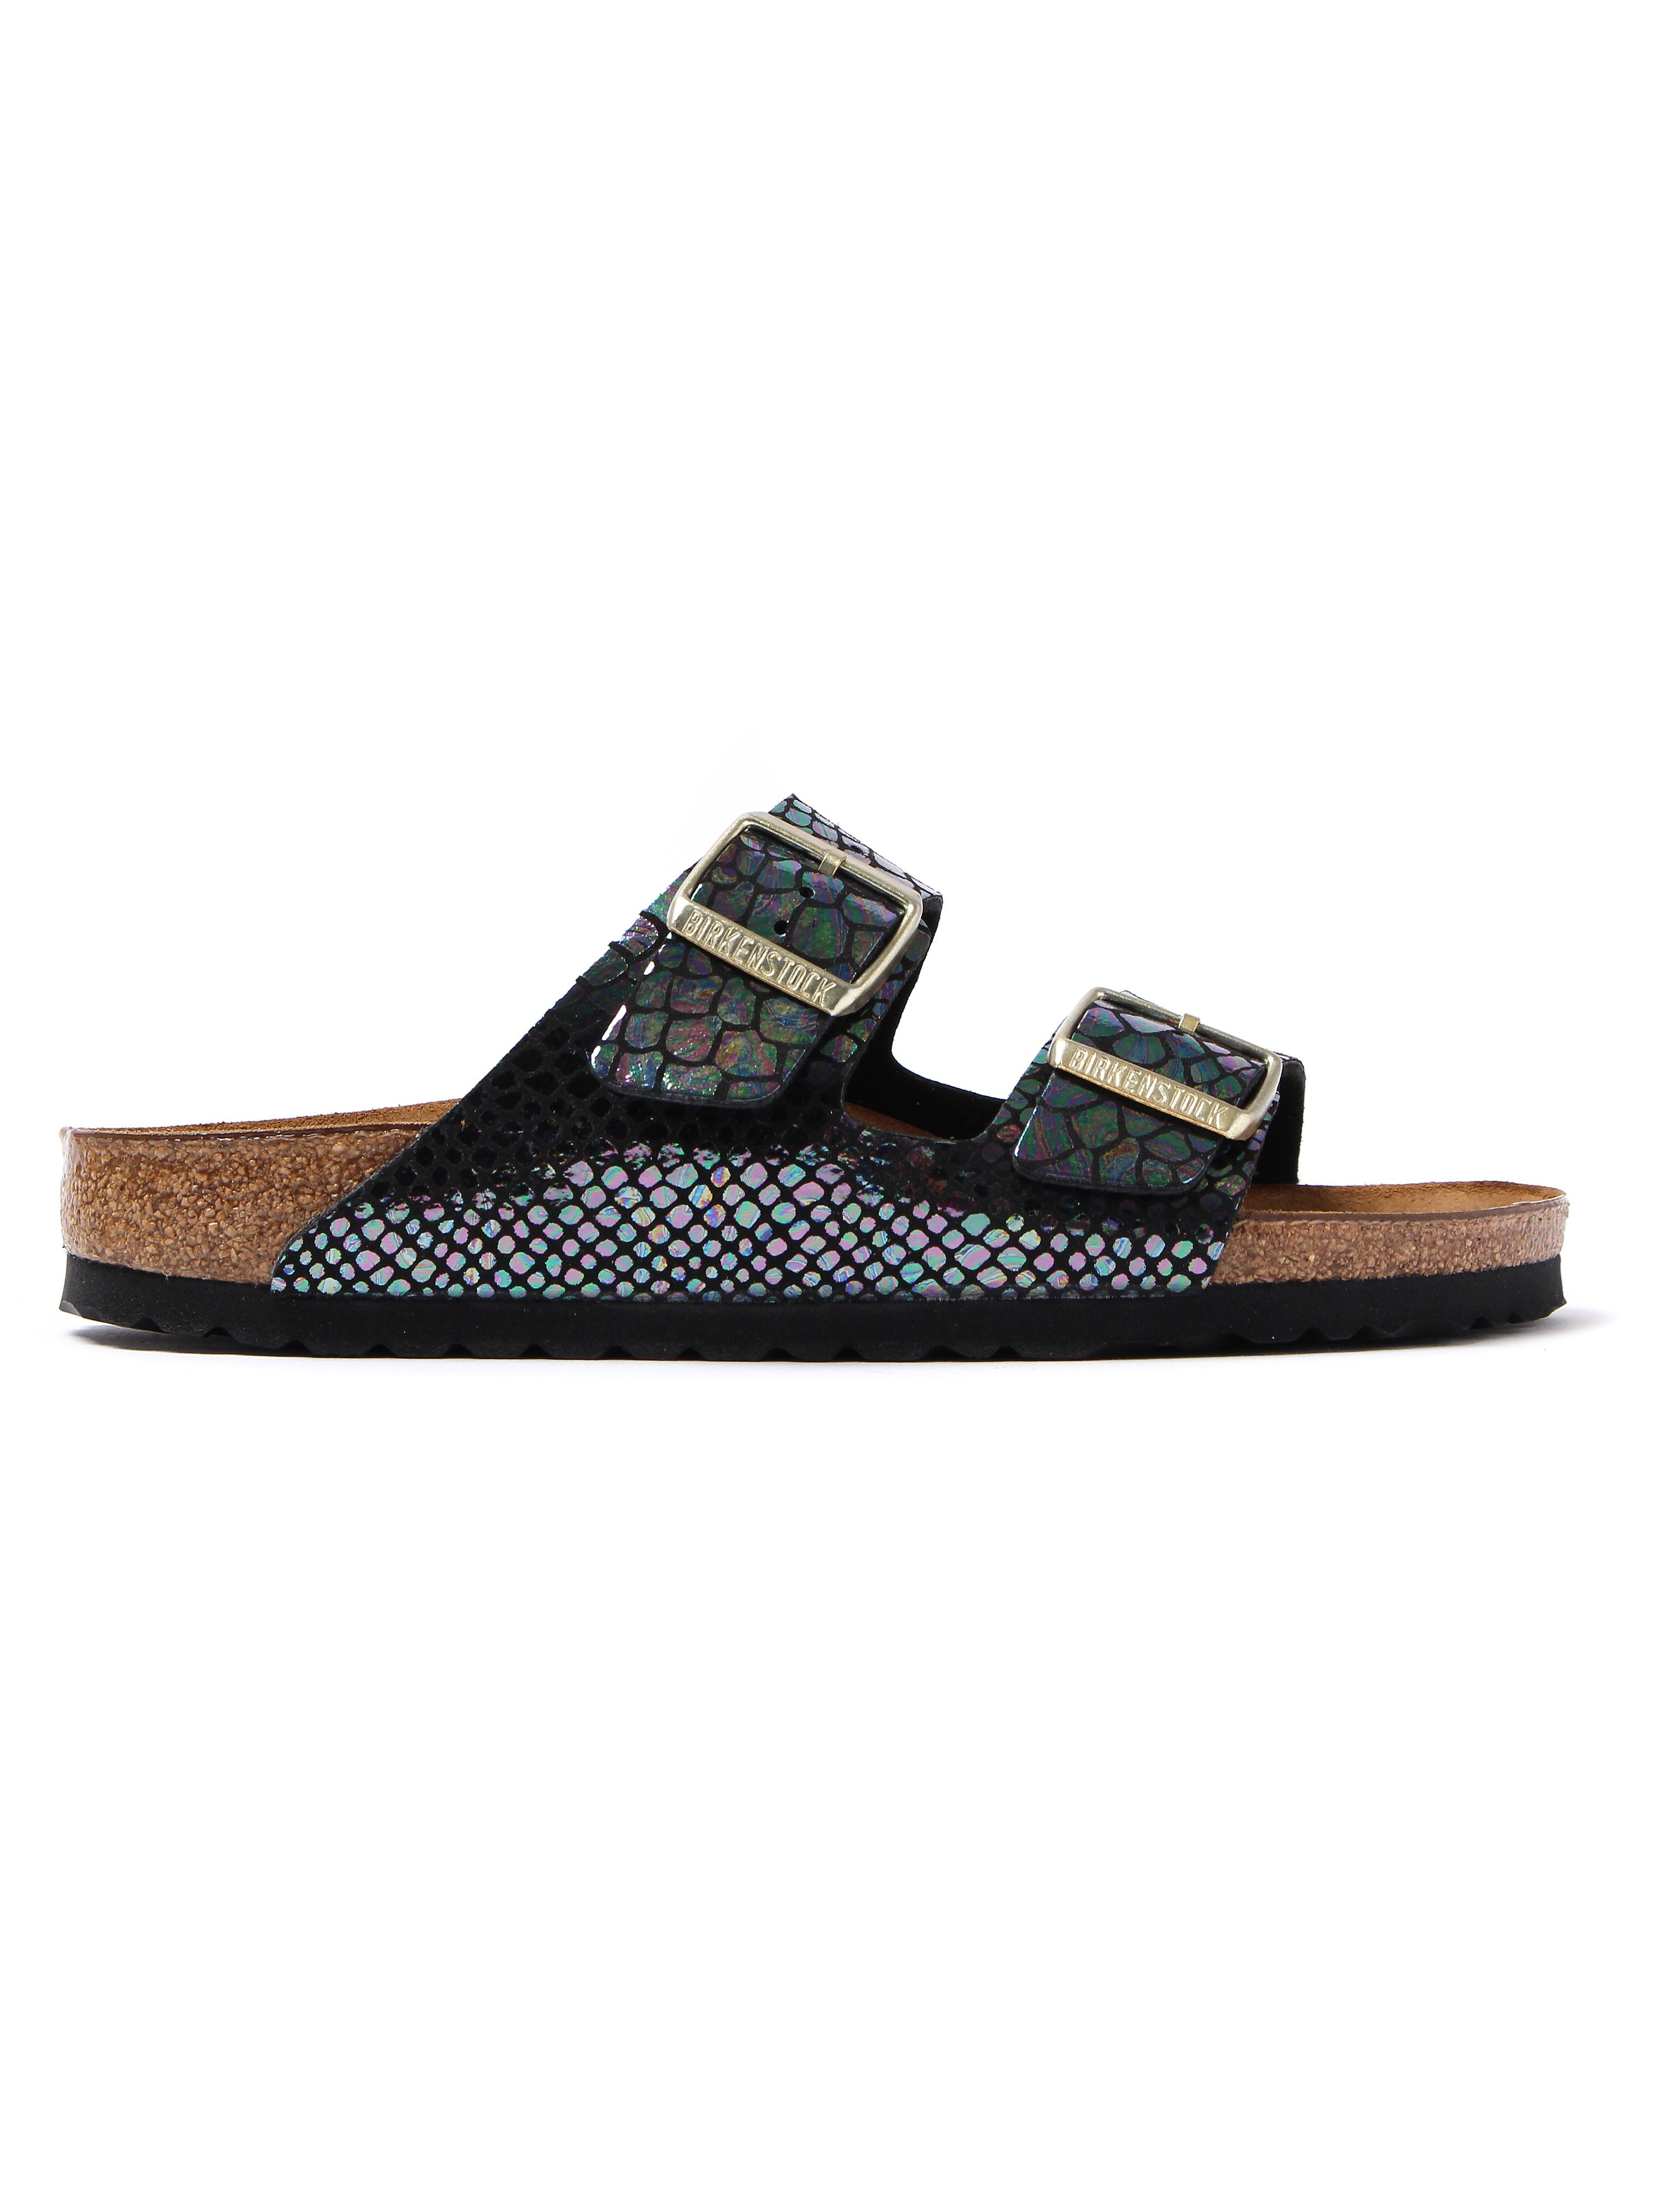 Birkenstock Women's Arizona Narrow Fit Sandals - Multicolour Snakeskin